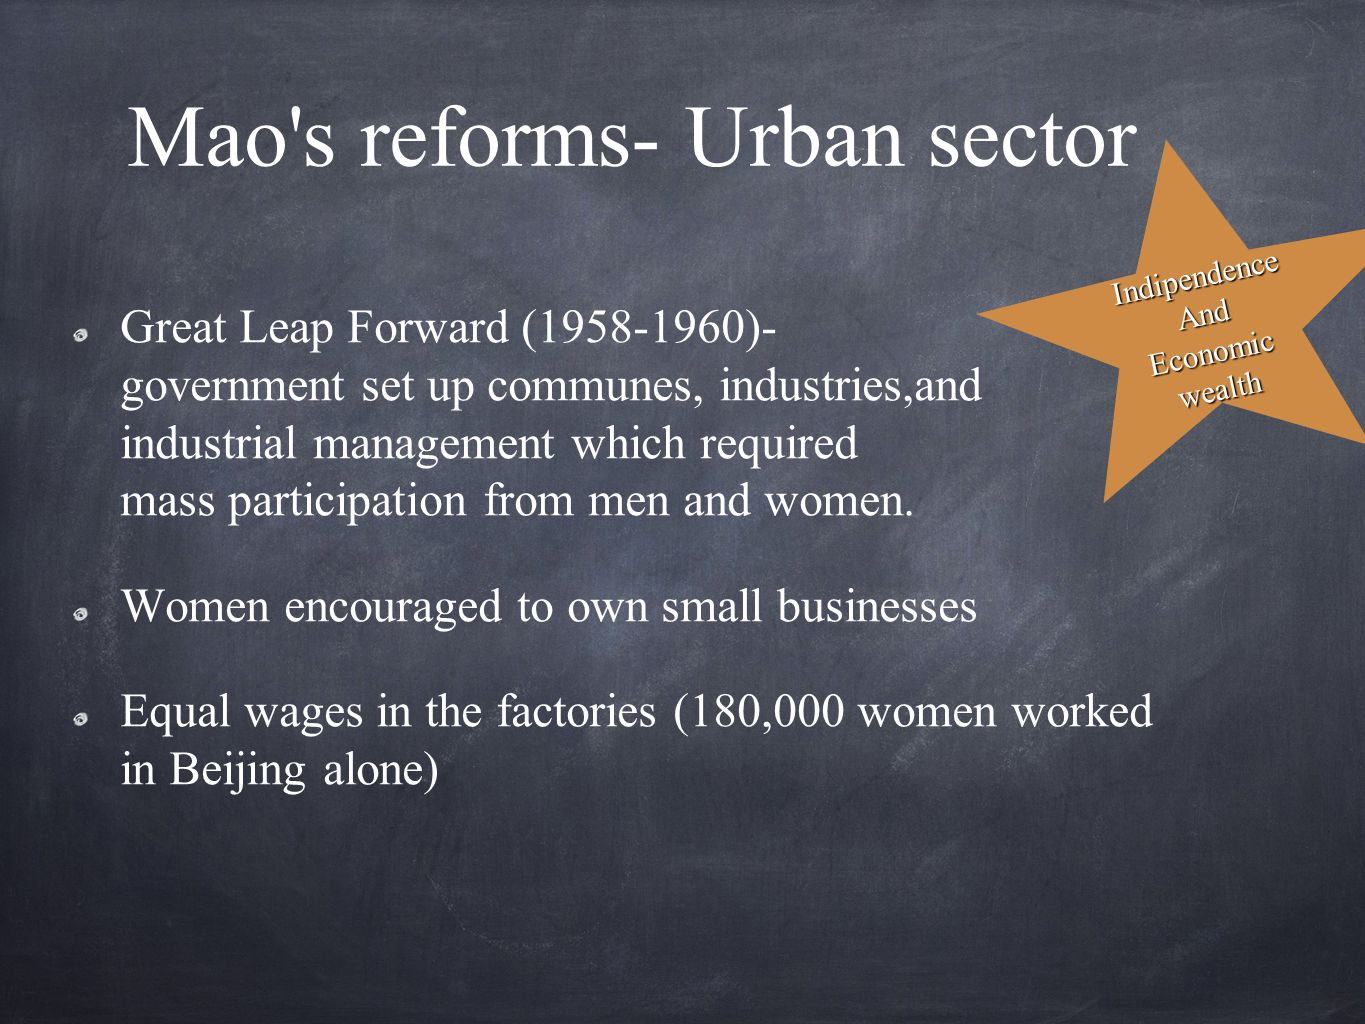 Mao s reforms- Urban sector Great Leap Forward (1958-1960)- government set up communes, industries,and industrial management which required mass participation from men and women.